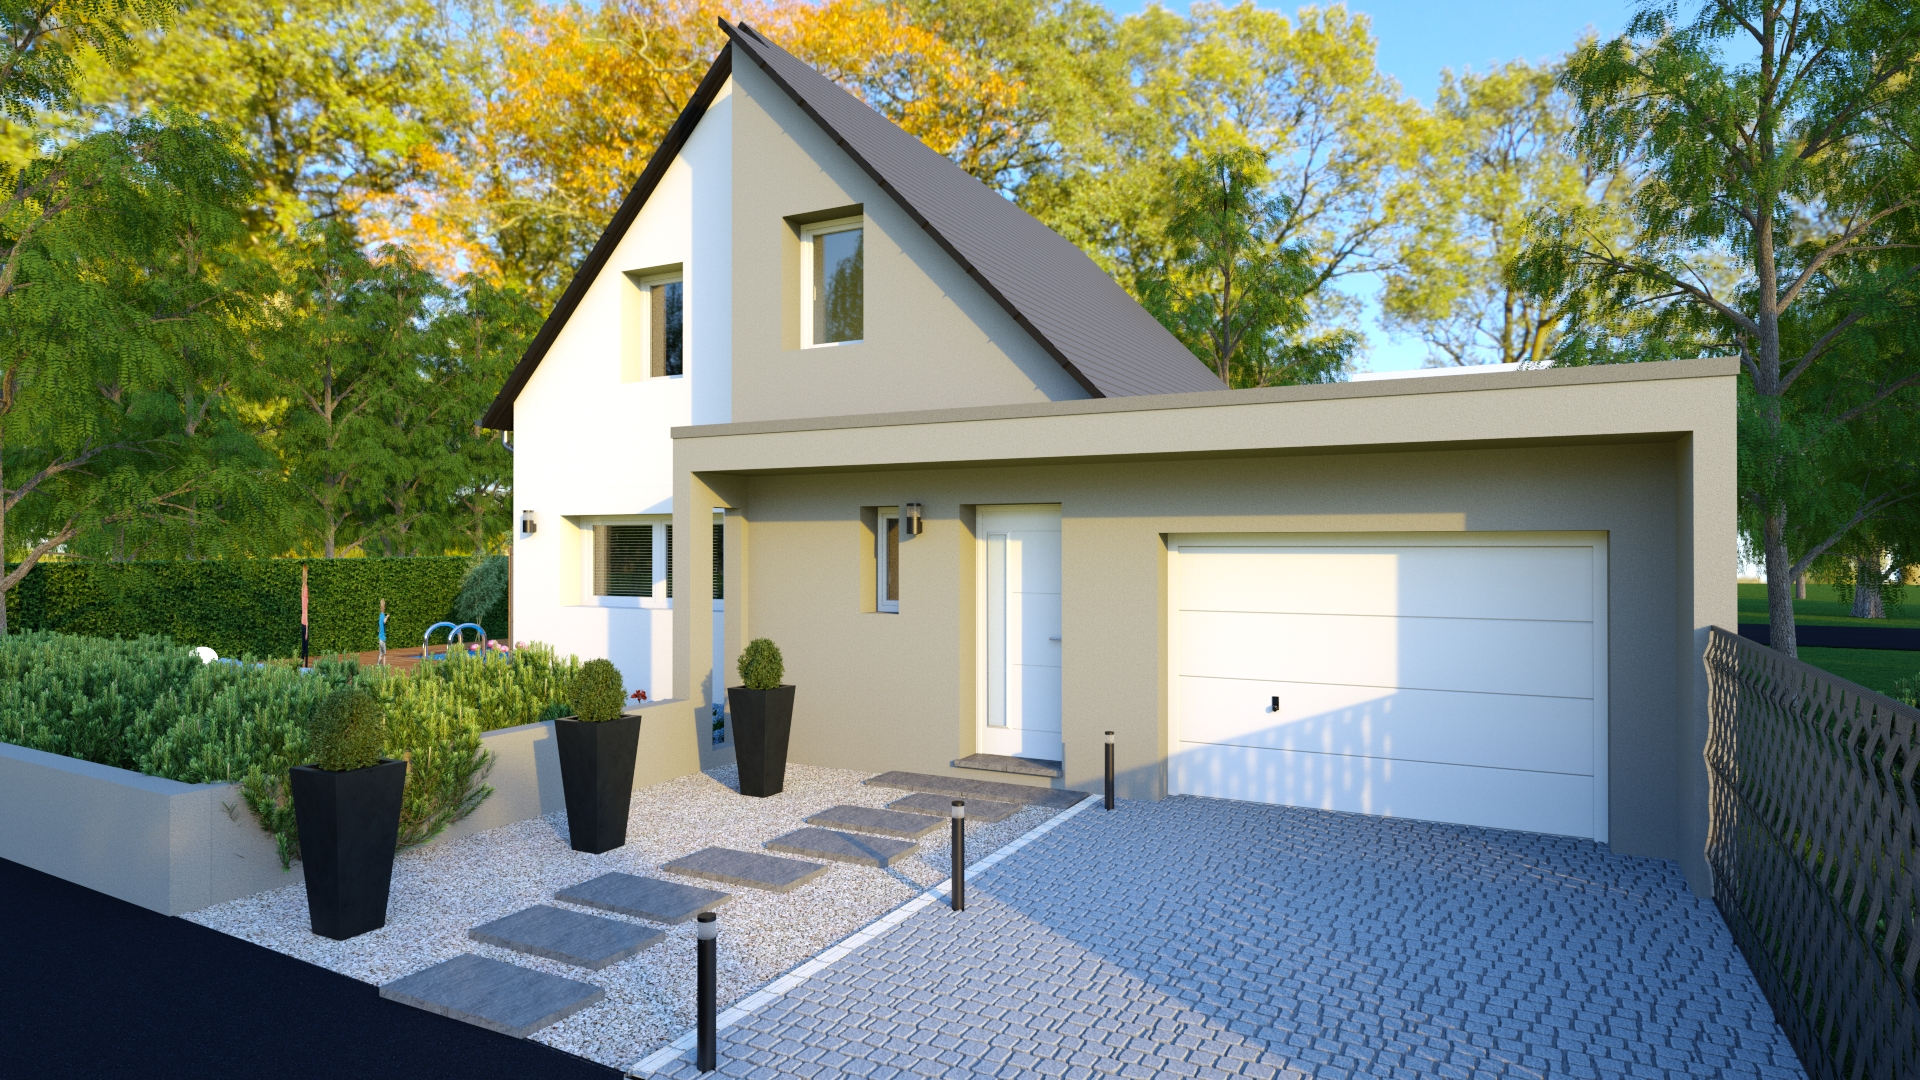 Maison traditionnelle 95 m² garage